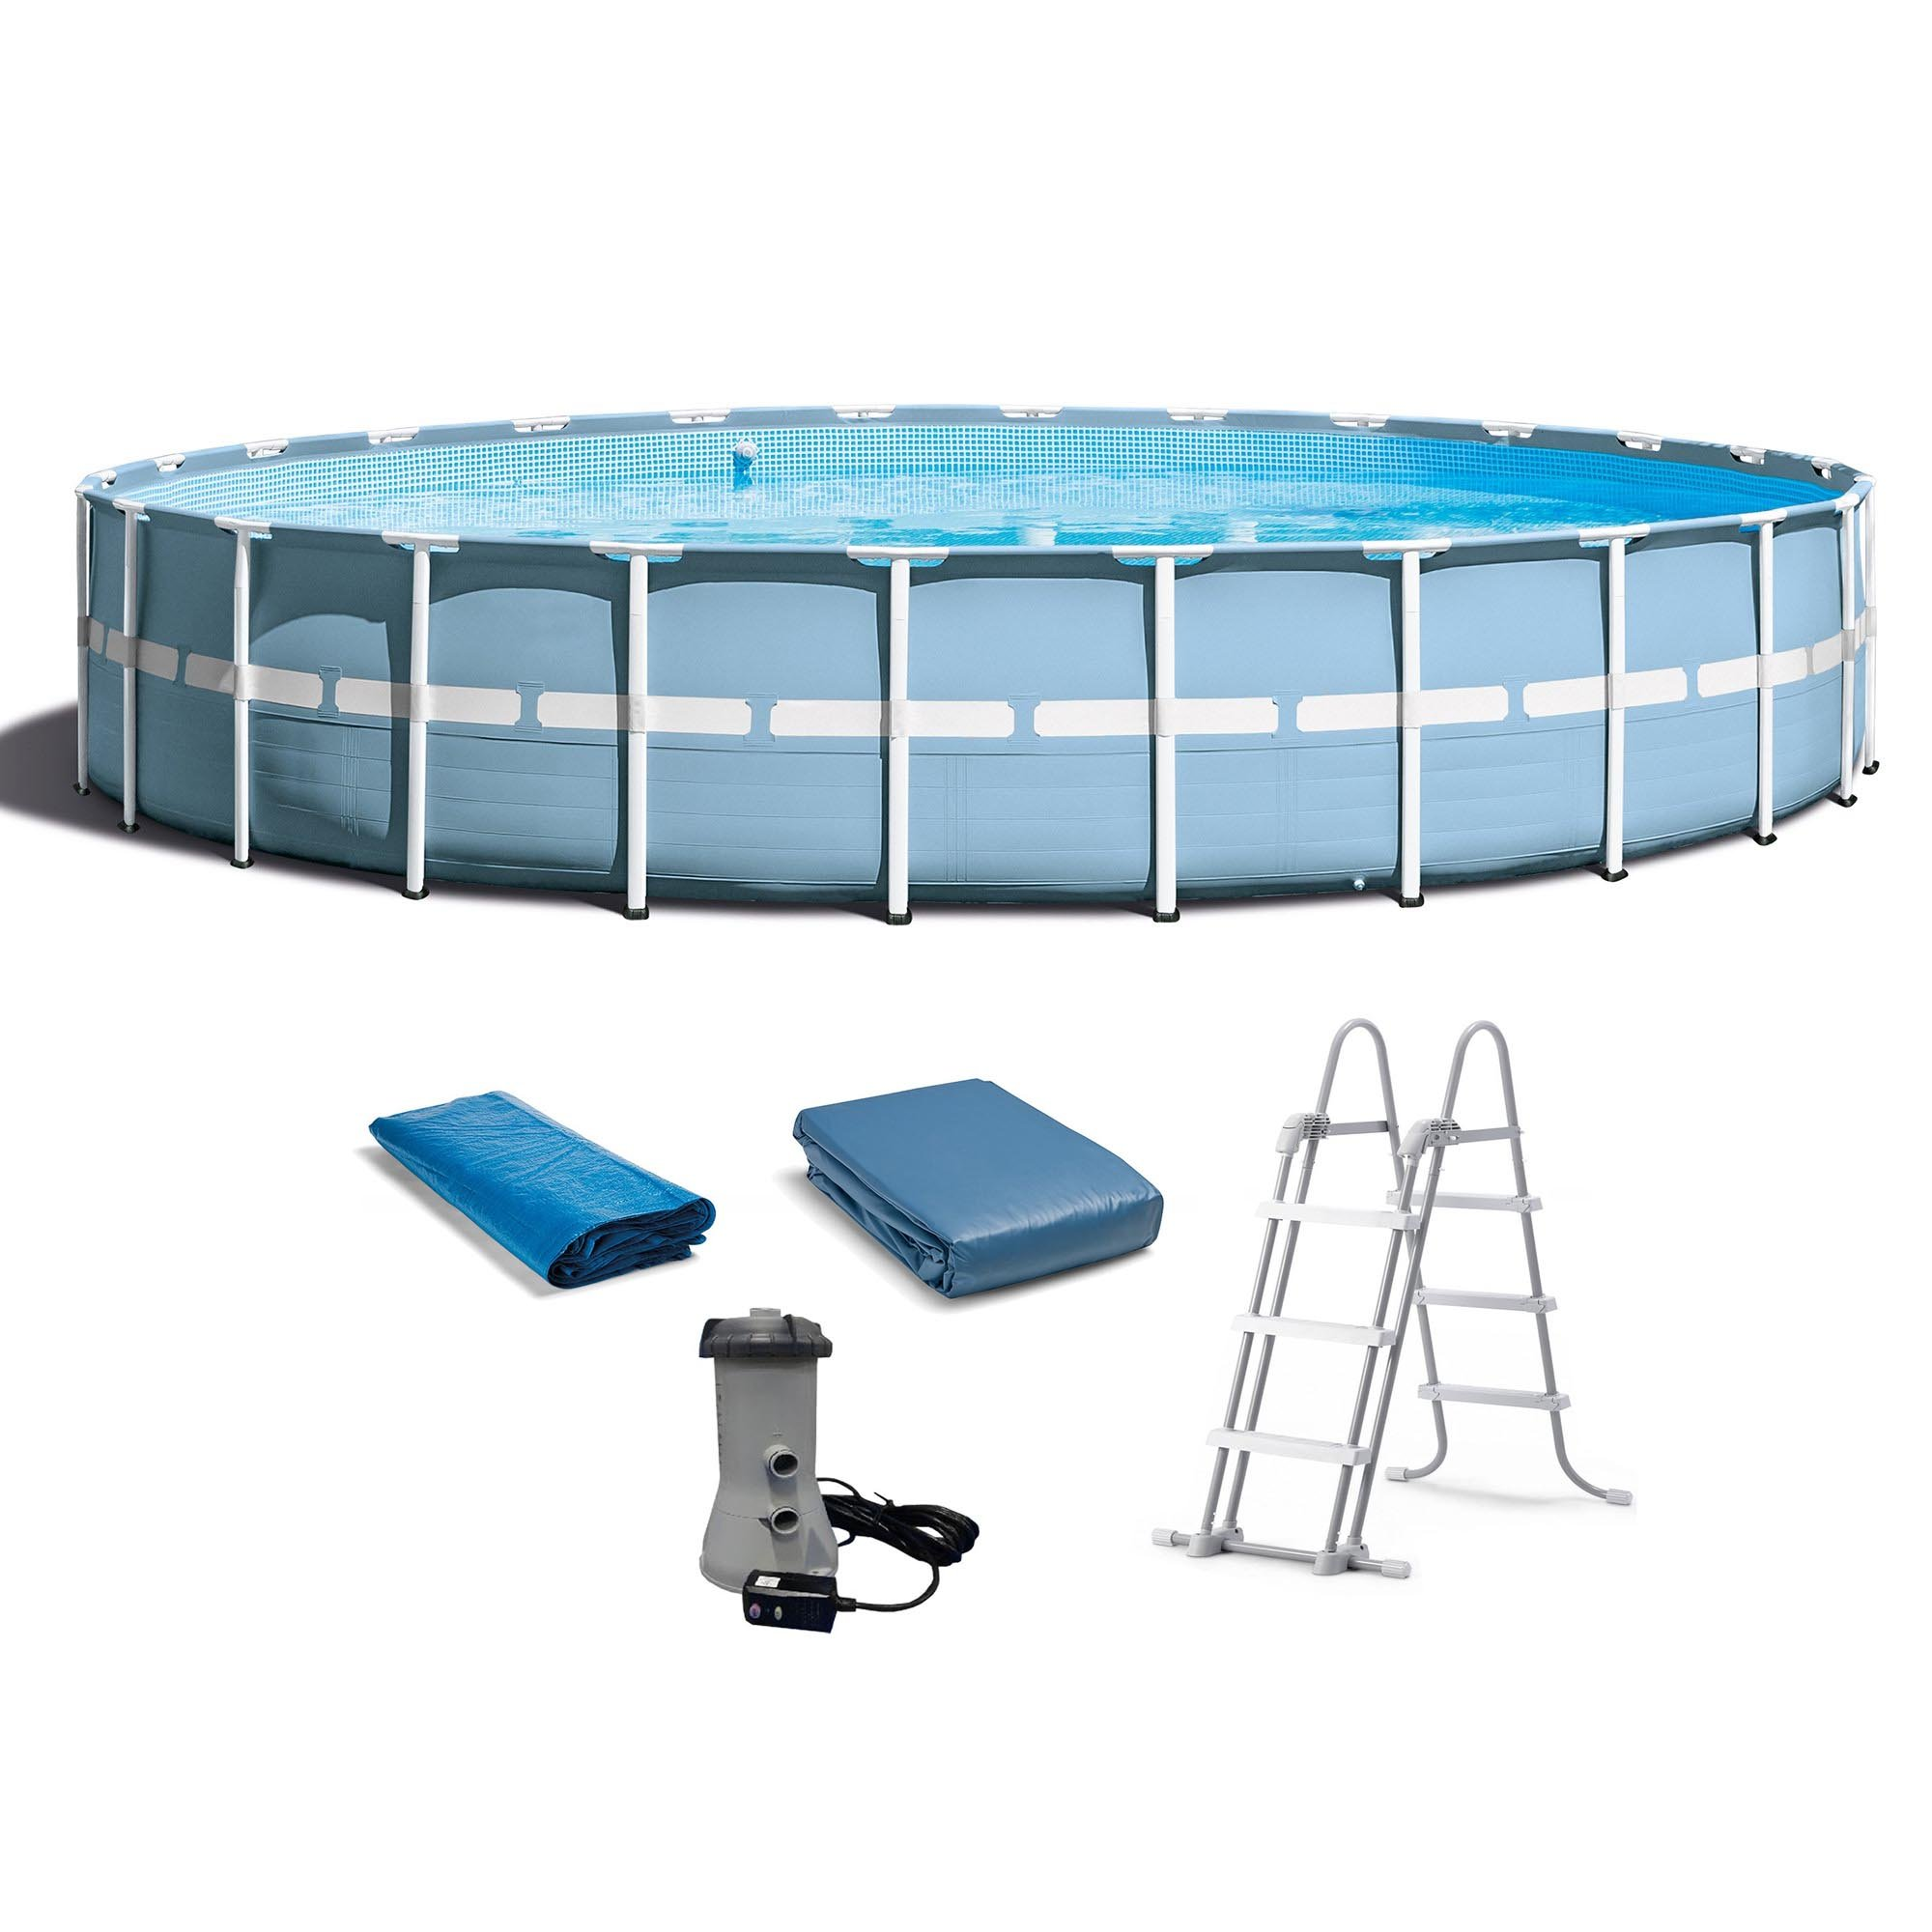 Swimming pools mega sale save up to 27 home patio - Craigslist swimming pools for sale ...